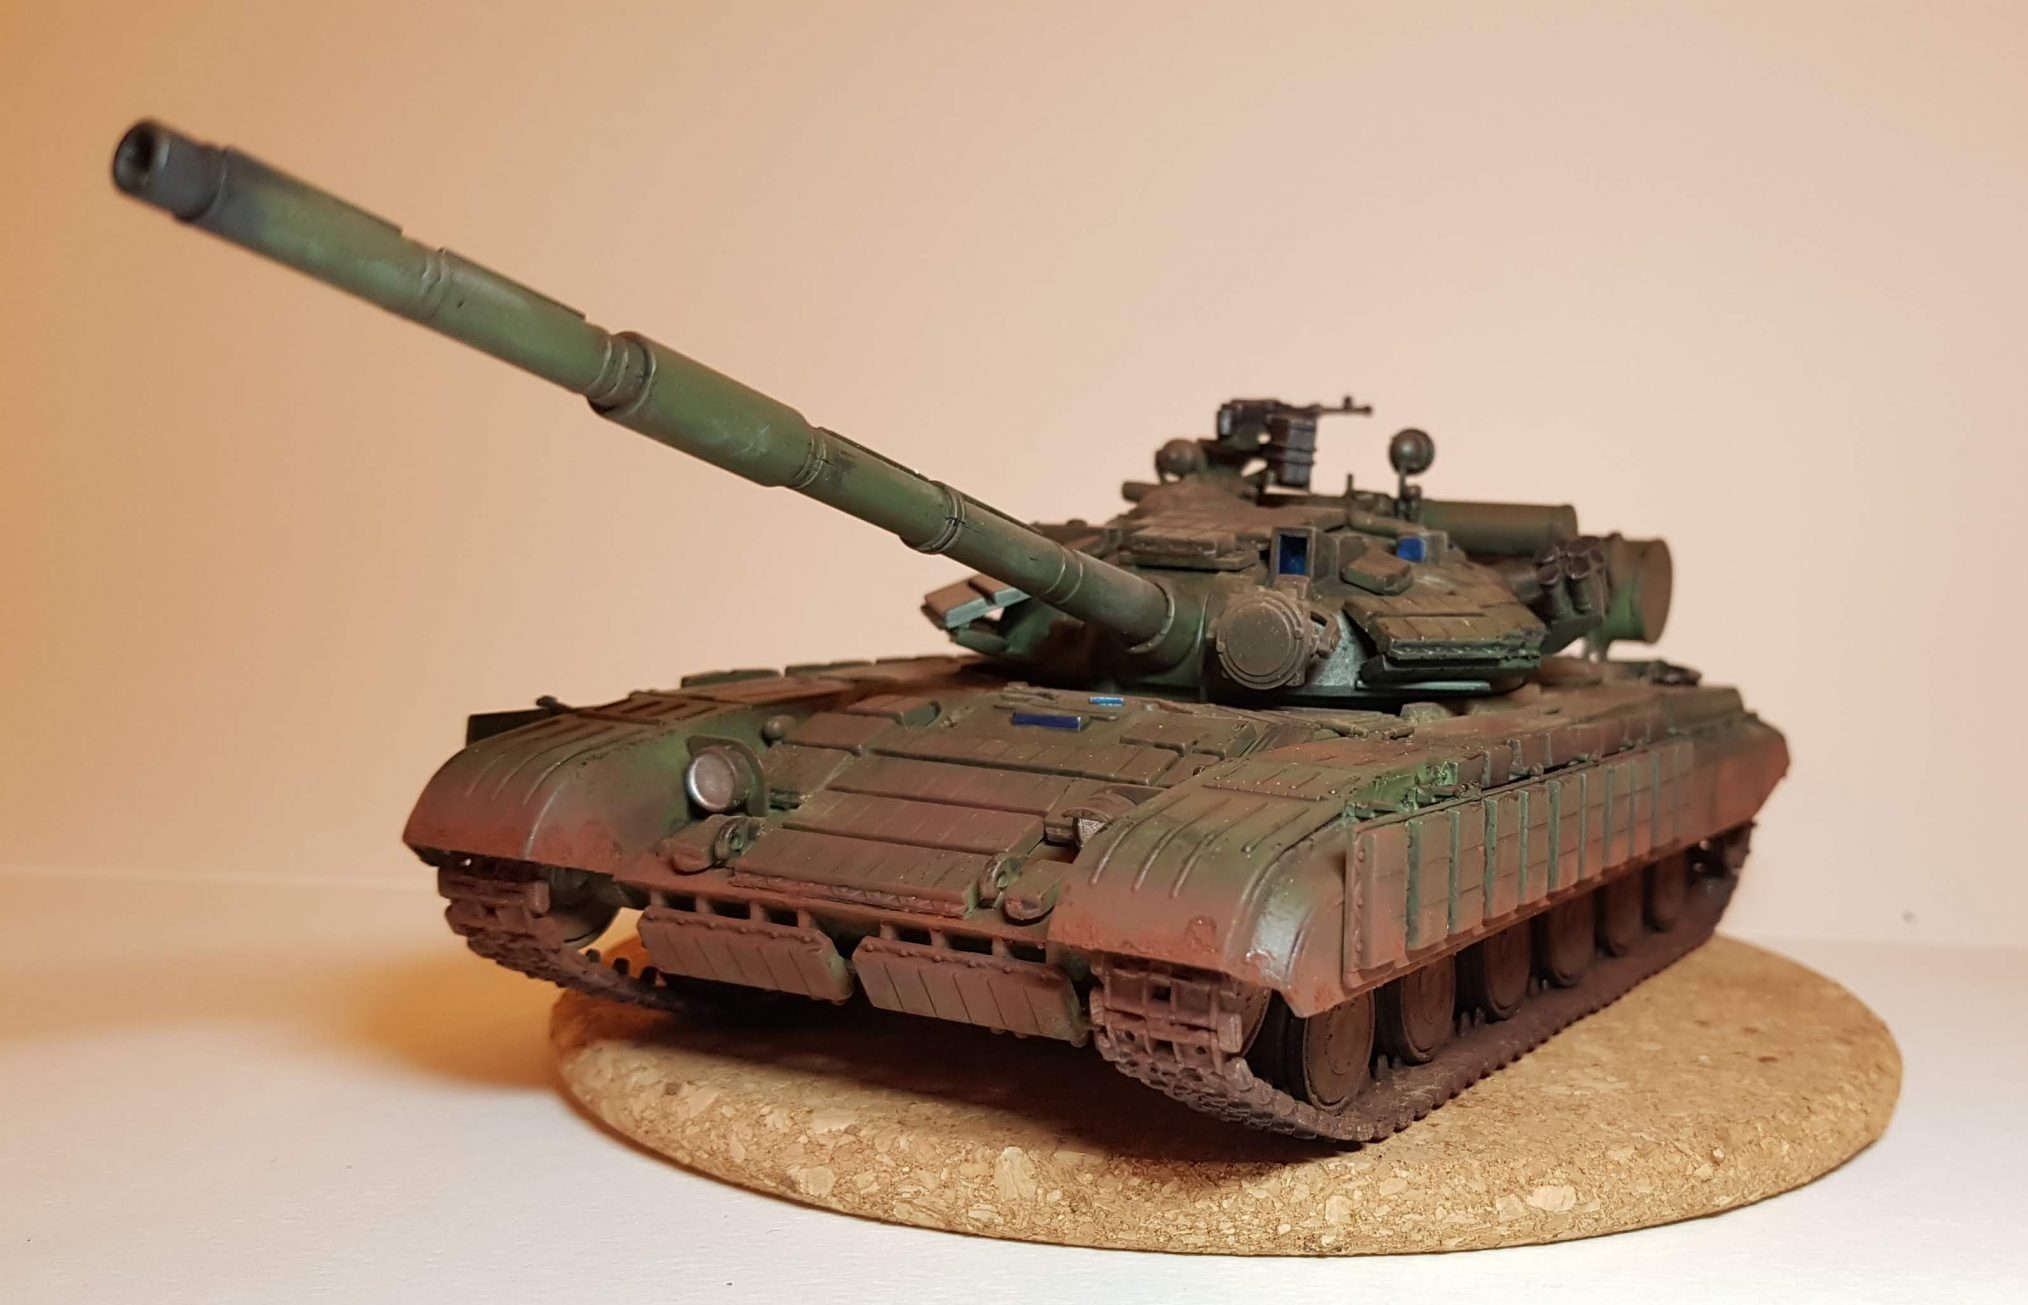 T-64B - View 2 - 1/35 Scale - Built By Wright Built - Skif Models